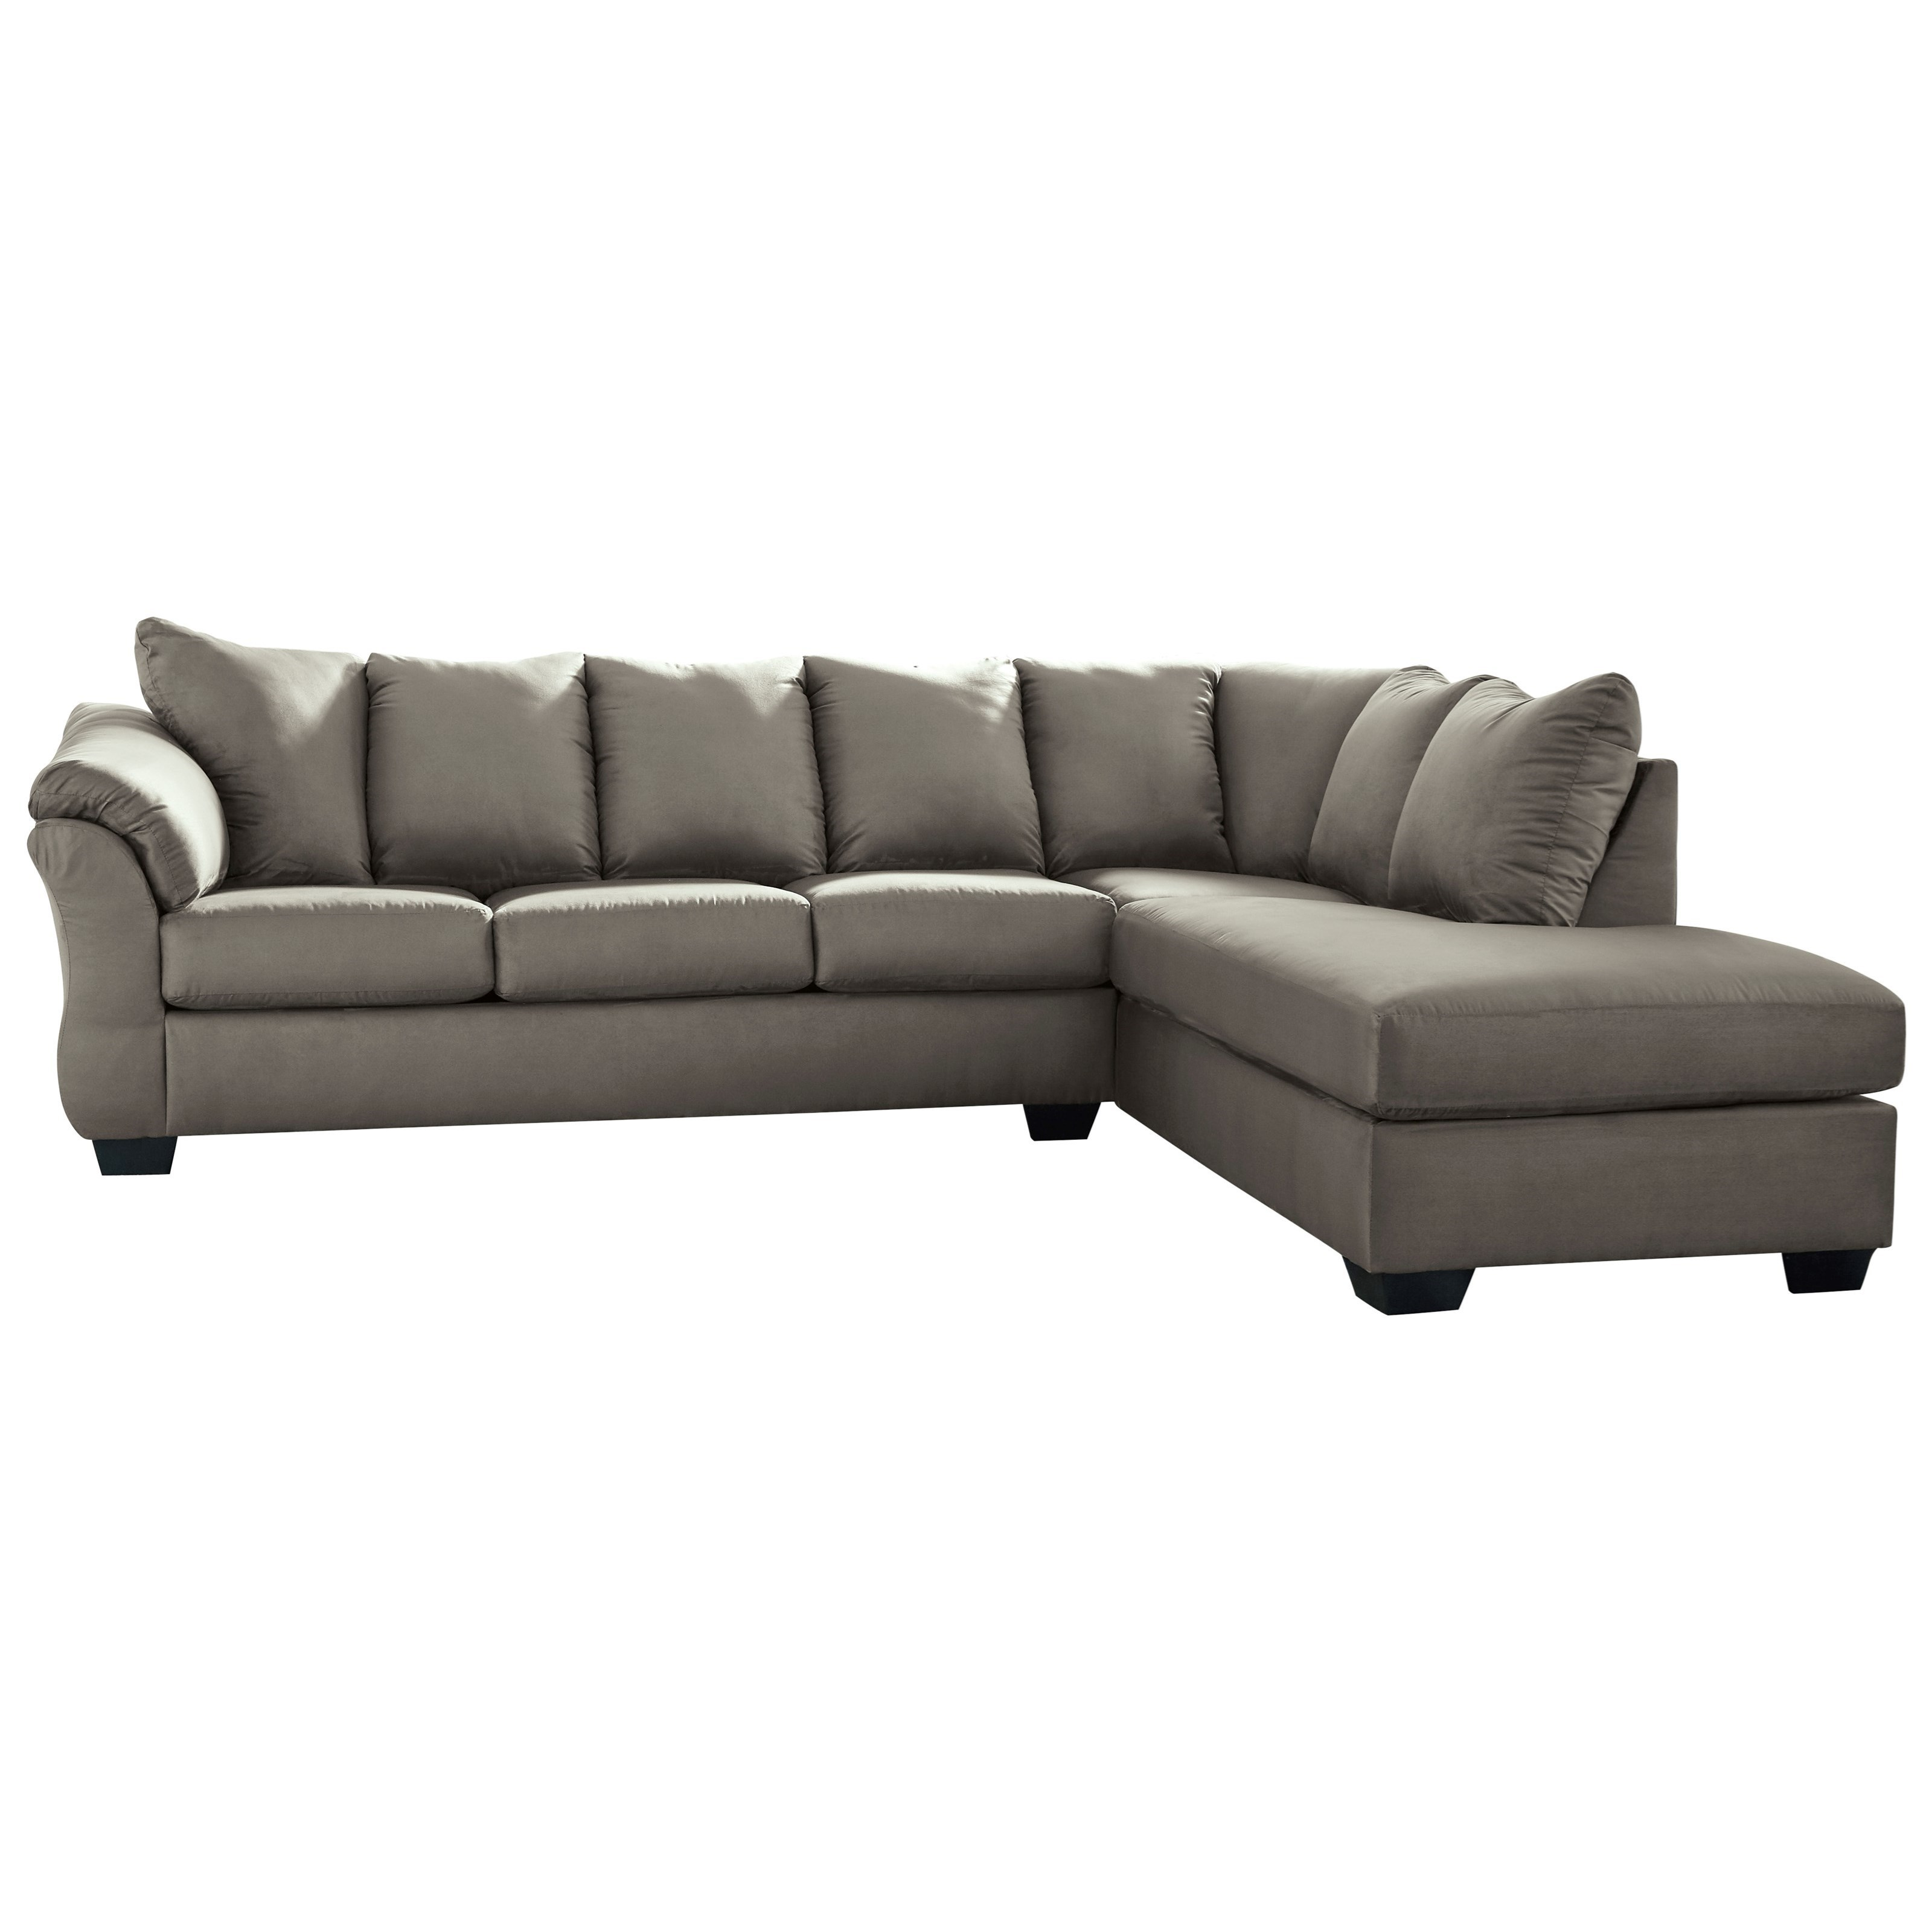 Darcy - Cobblestone 2-Piece Sectional Sofa by Signature Design by Ashley at Northeast Factory Direct